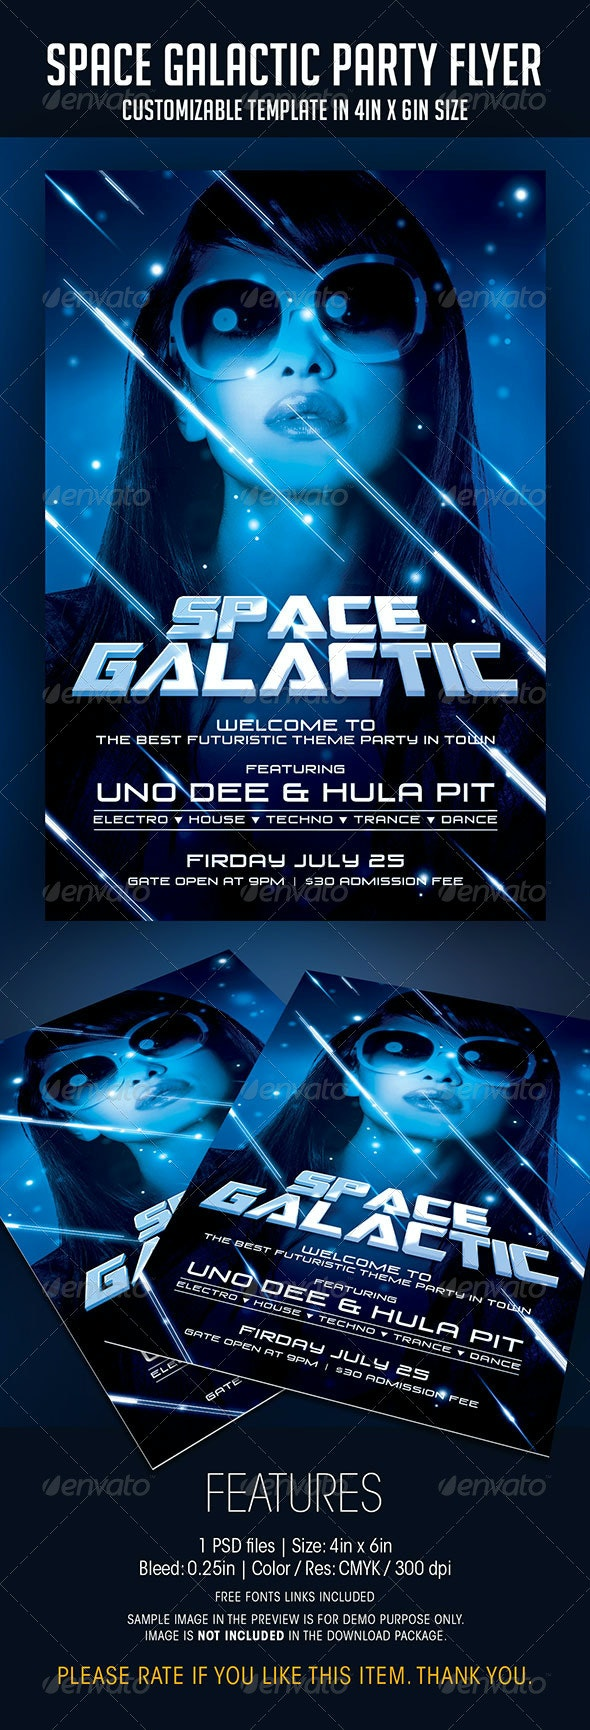 Space Galactic Party Flyer - Clubs & Parties Events